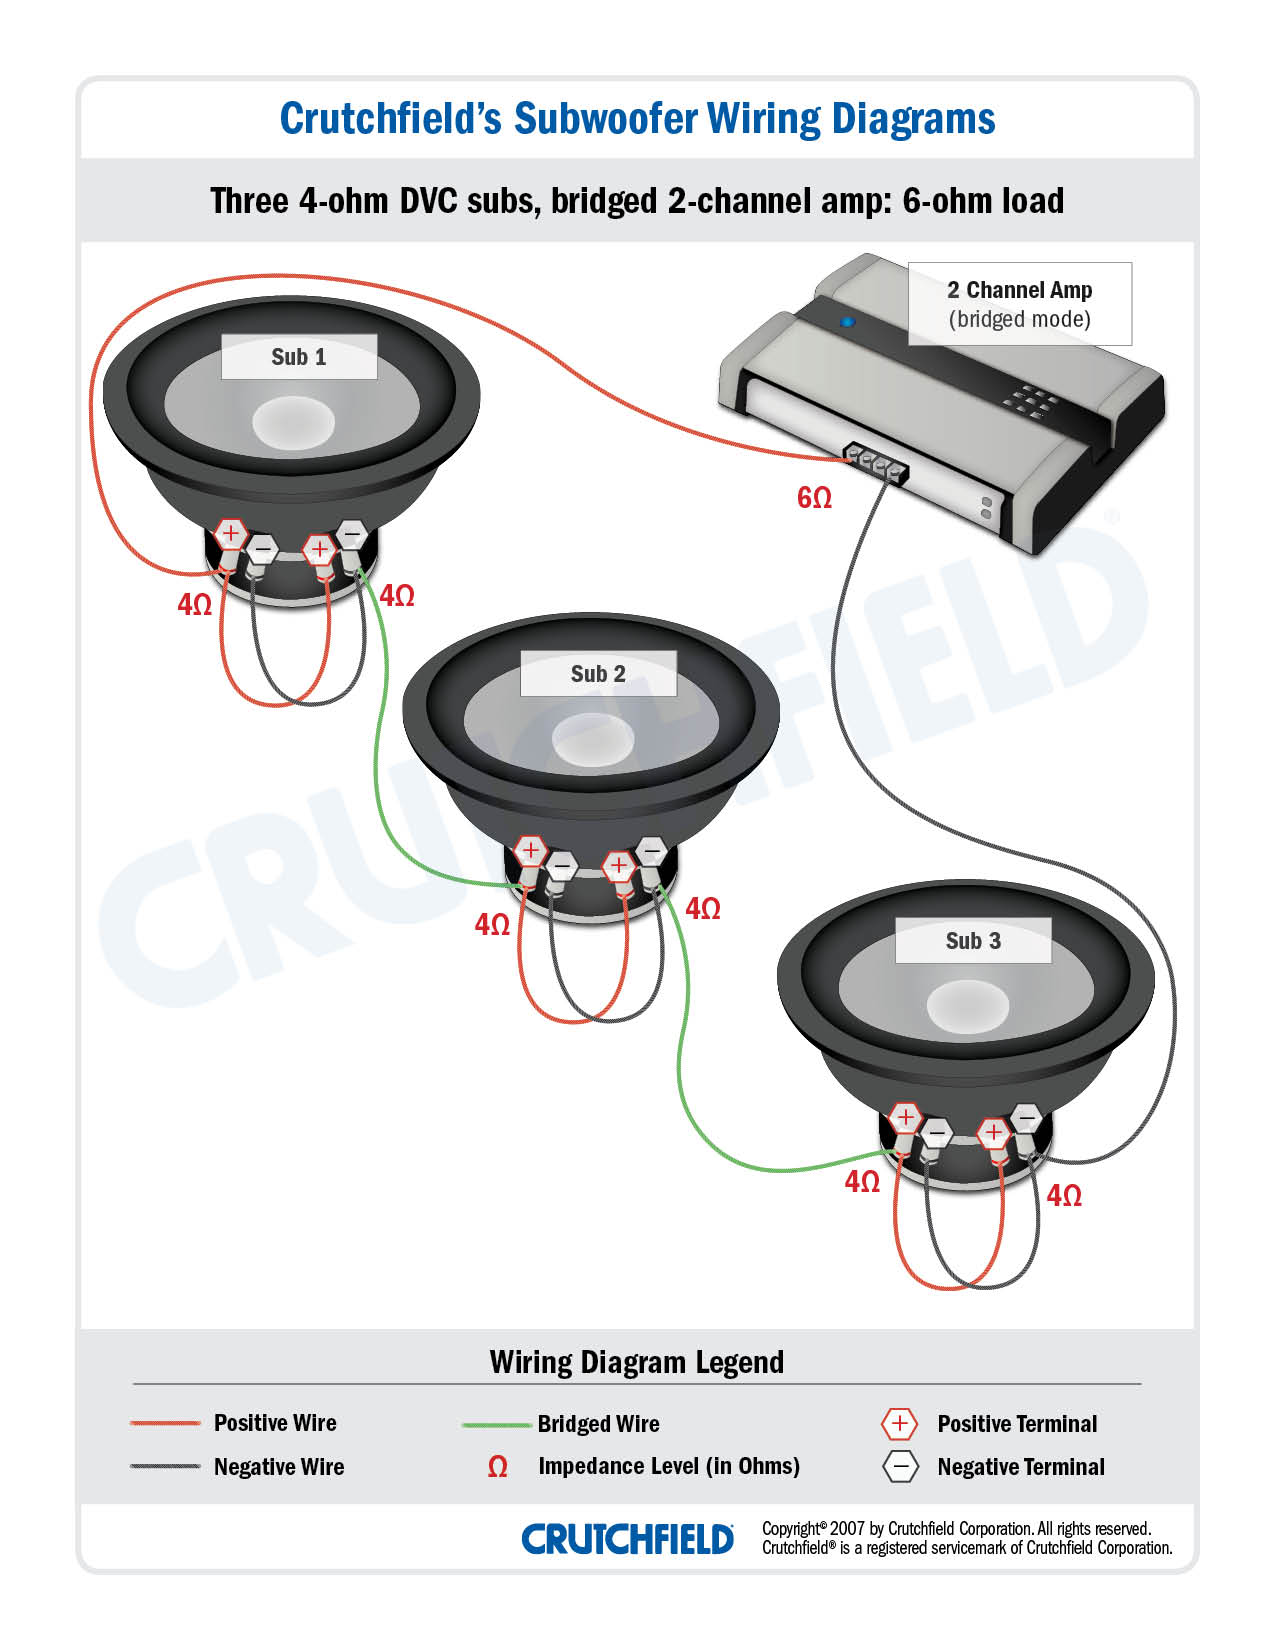 3 DVC 4 ohm 2 ch subwoofer wiring diagrams amp wiring diagram at cos-gaming.co